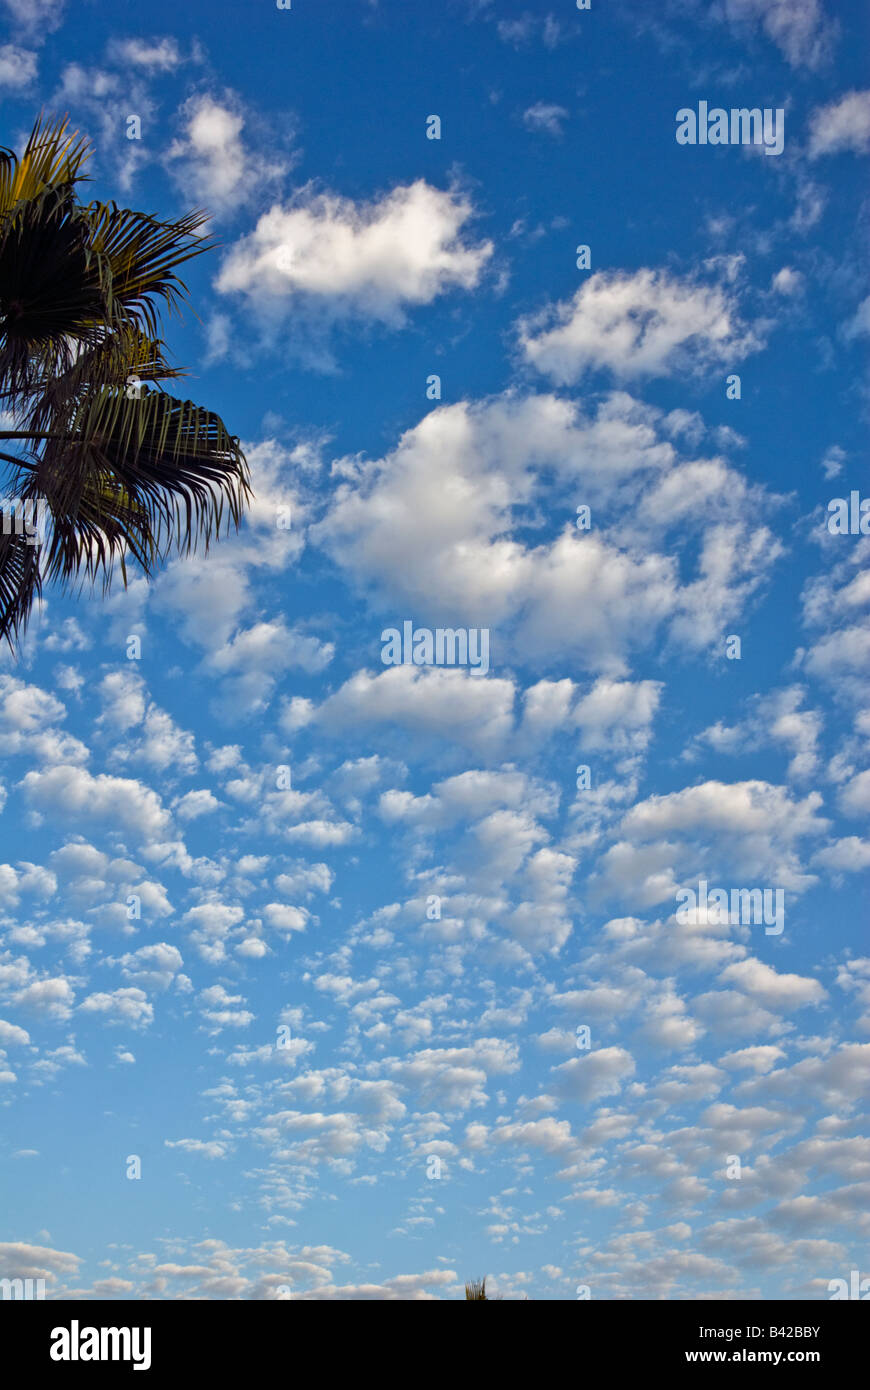 Developing cumulus Clouds, Palm Trees, Blue Sky, Nobody, no one Howard Hughes Center los Angeles California, USA Stock Photo